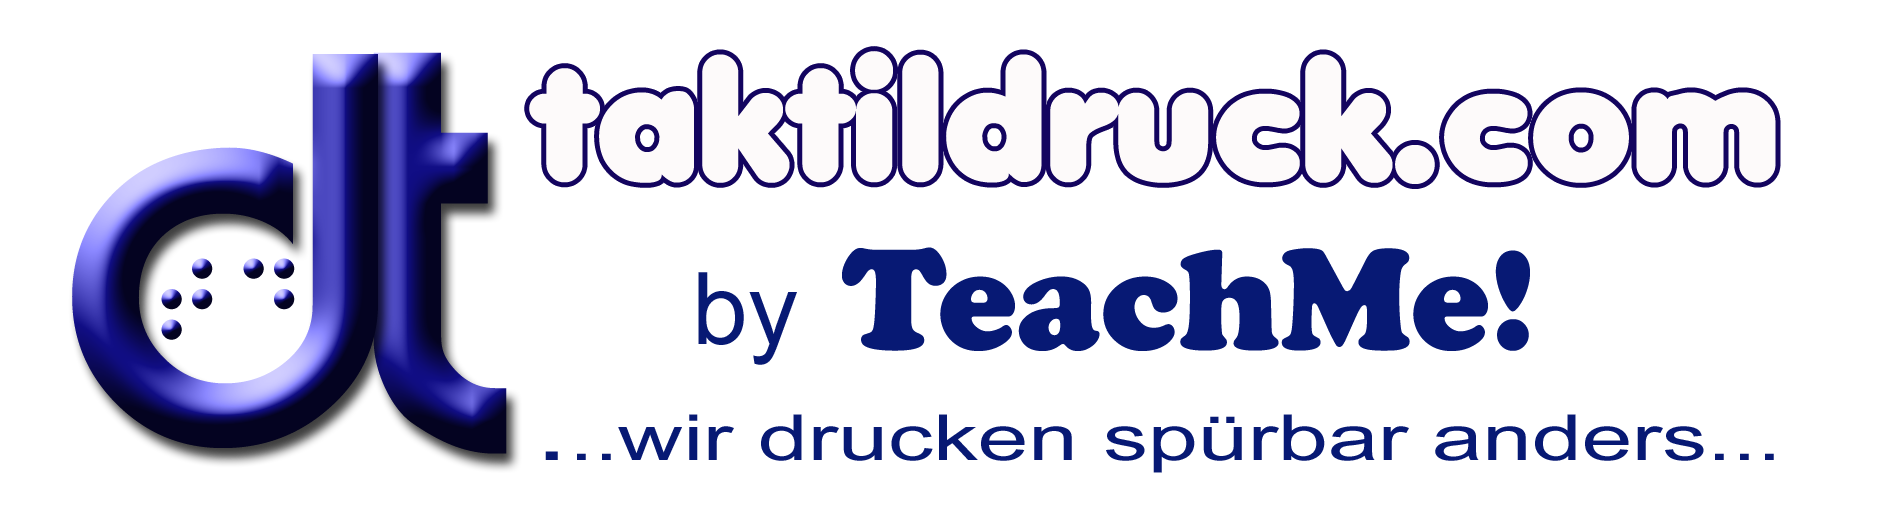 Logo taktildruck by teachme